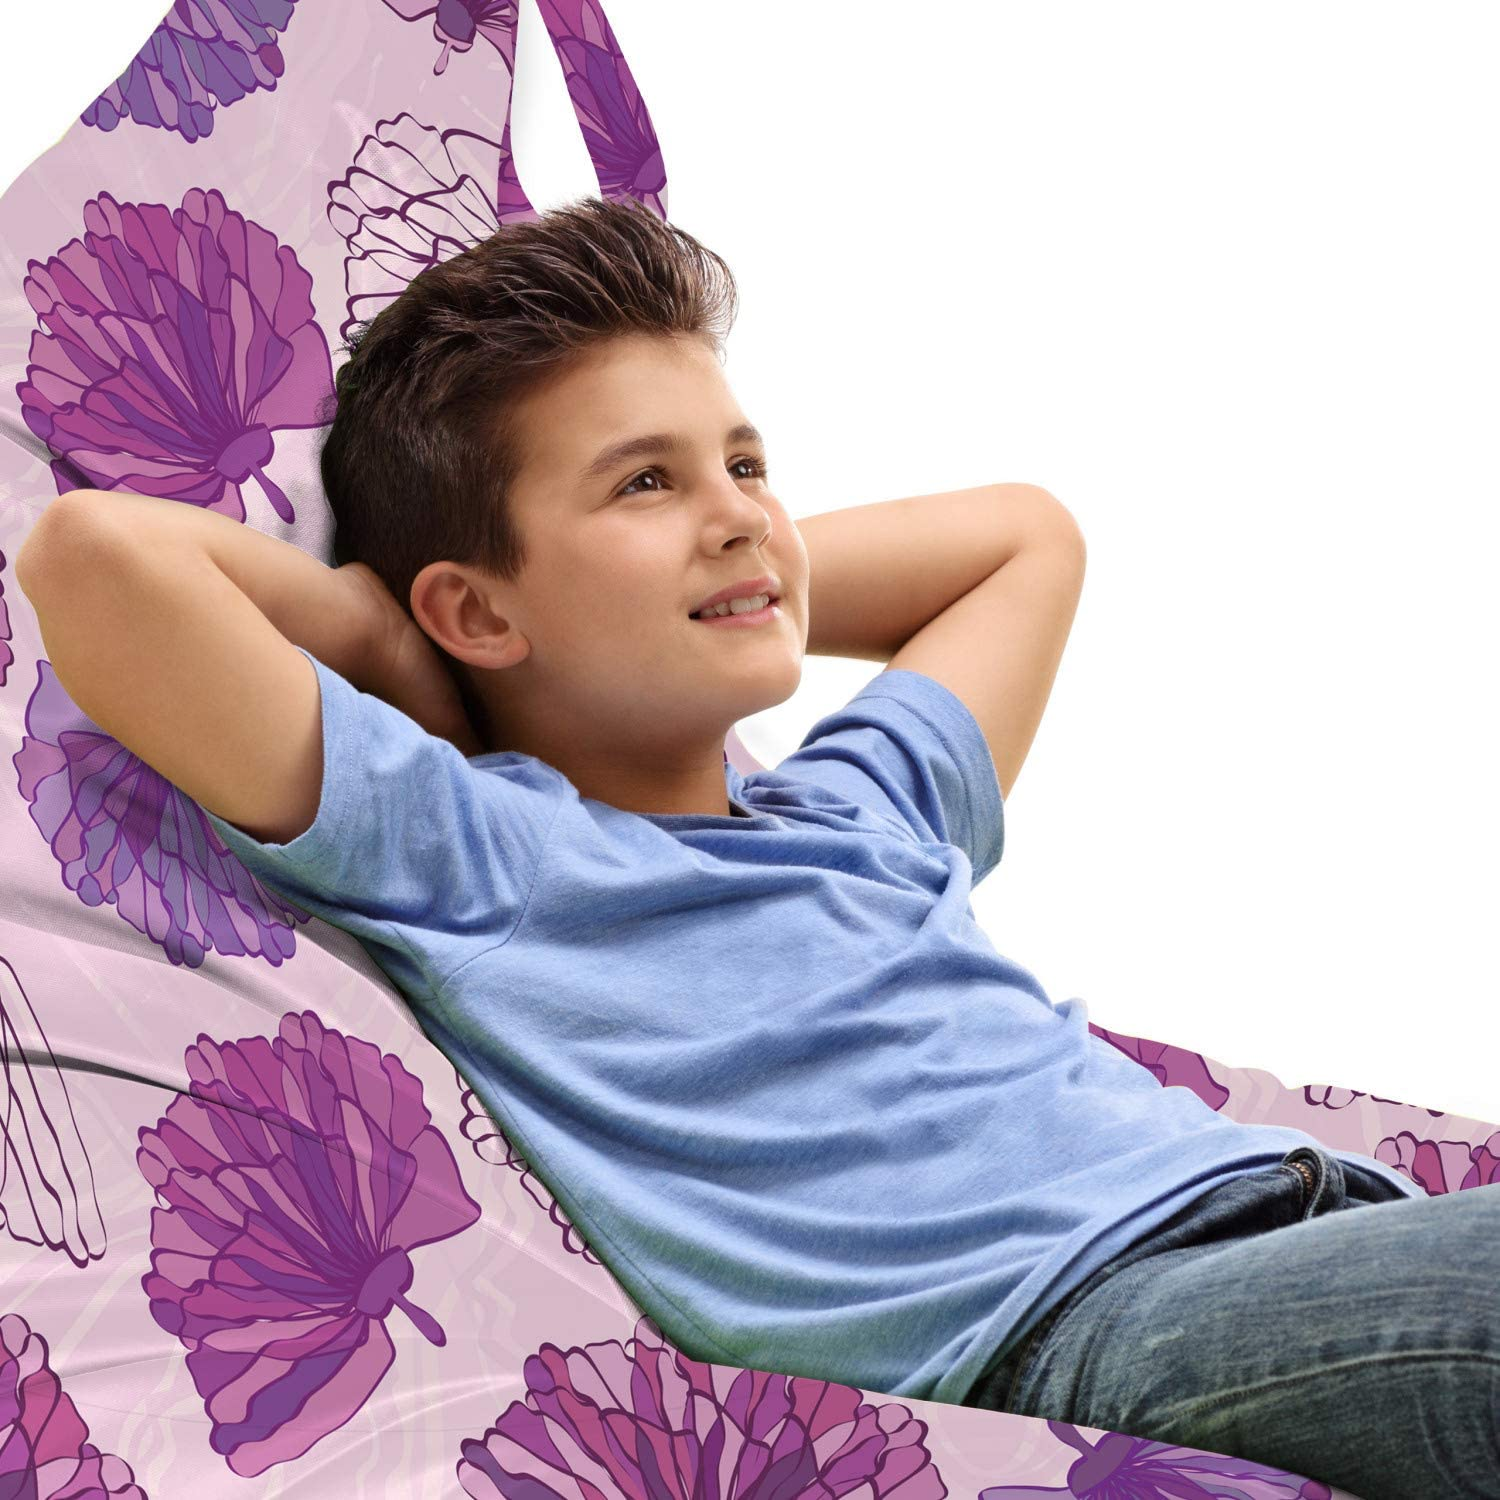 Ambesonne Romantic Lounger Chair Bag Hand Pink and Online limited product Ranking TOP8 Purple Drawn